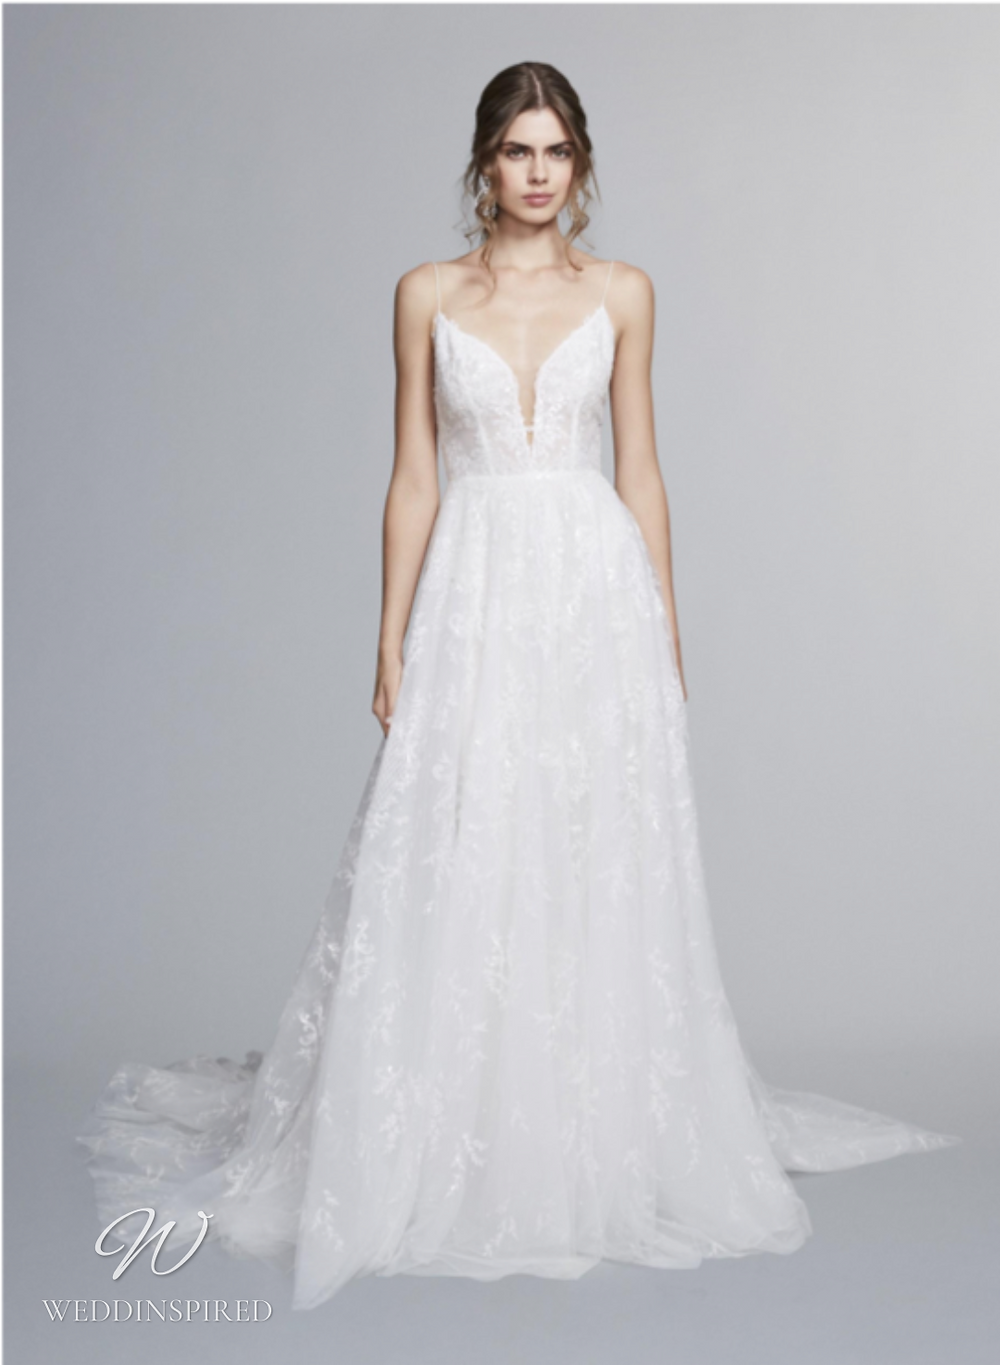 A Marchesa Notte Fall 2021 lace A-line wedding dress with straps and a v neck